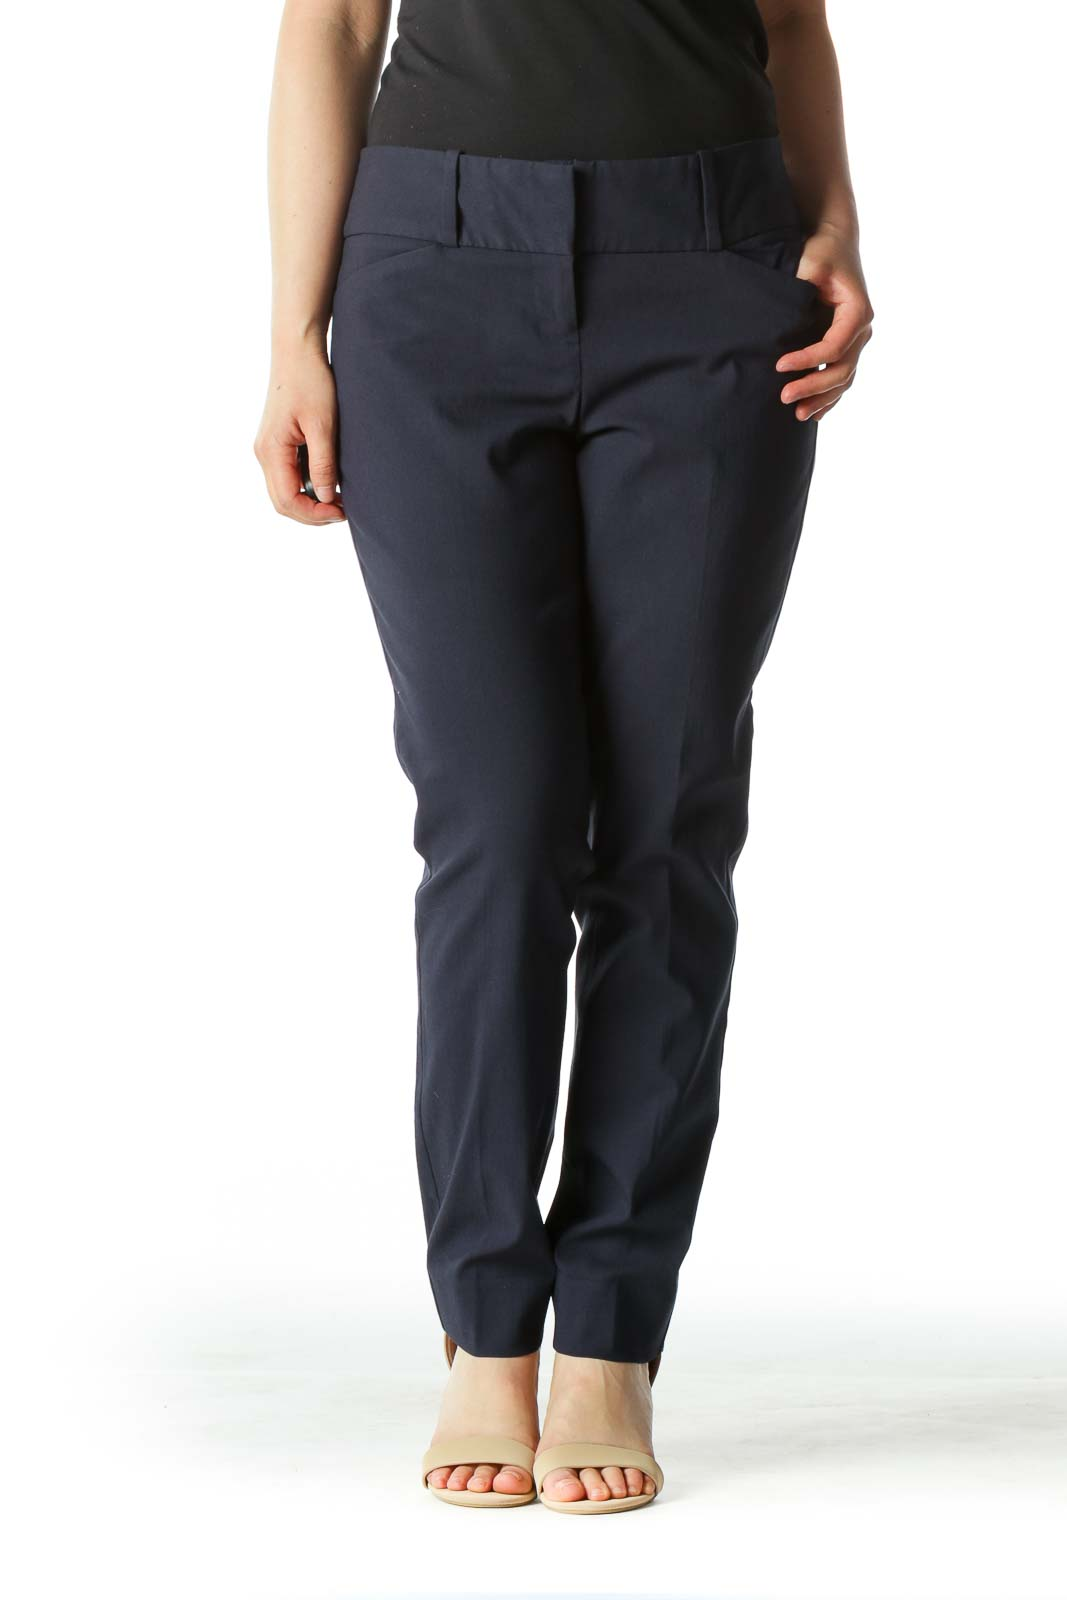 Navy Blue Capri Slim Fit Pants